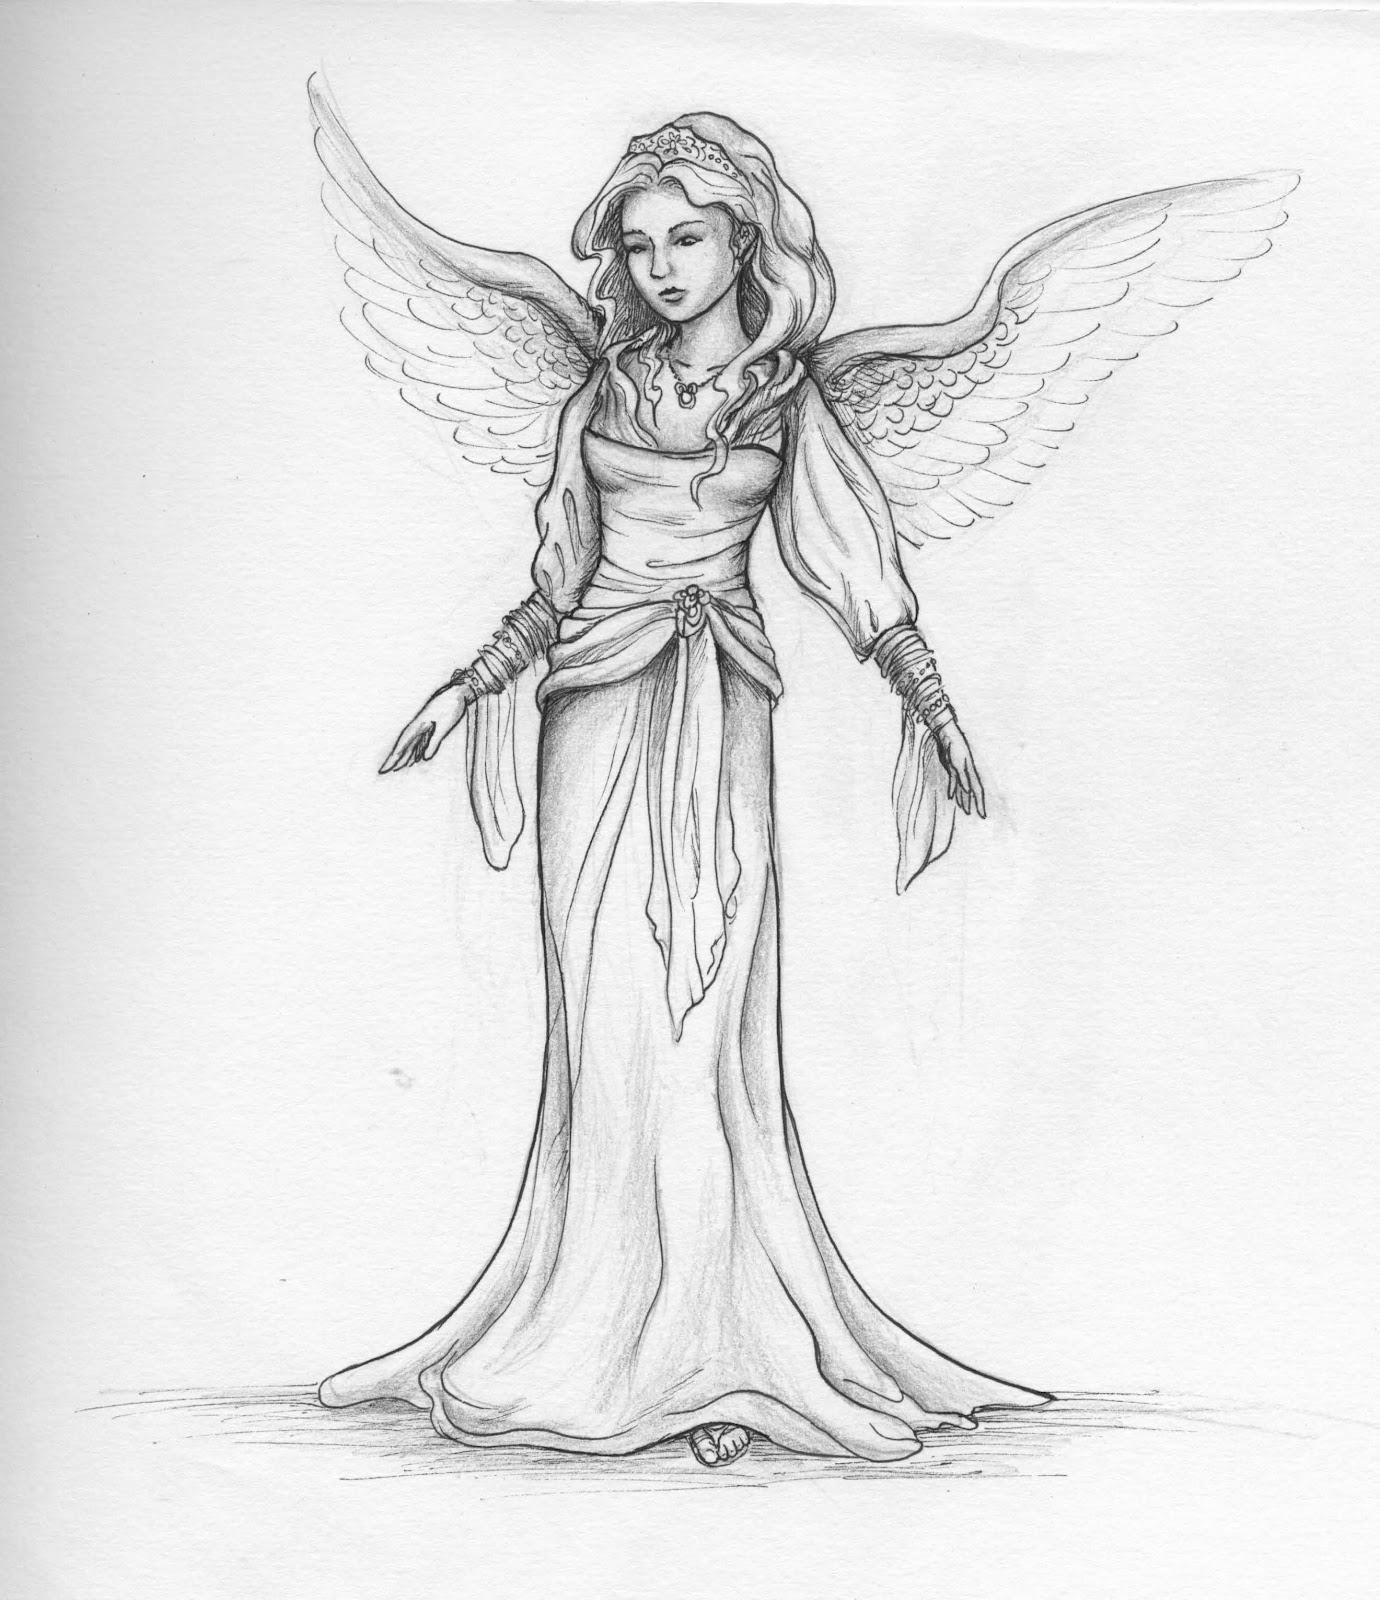 Pencil Drawings: Pencil Drawings Of Angels